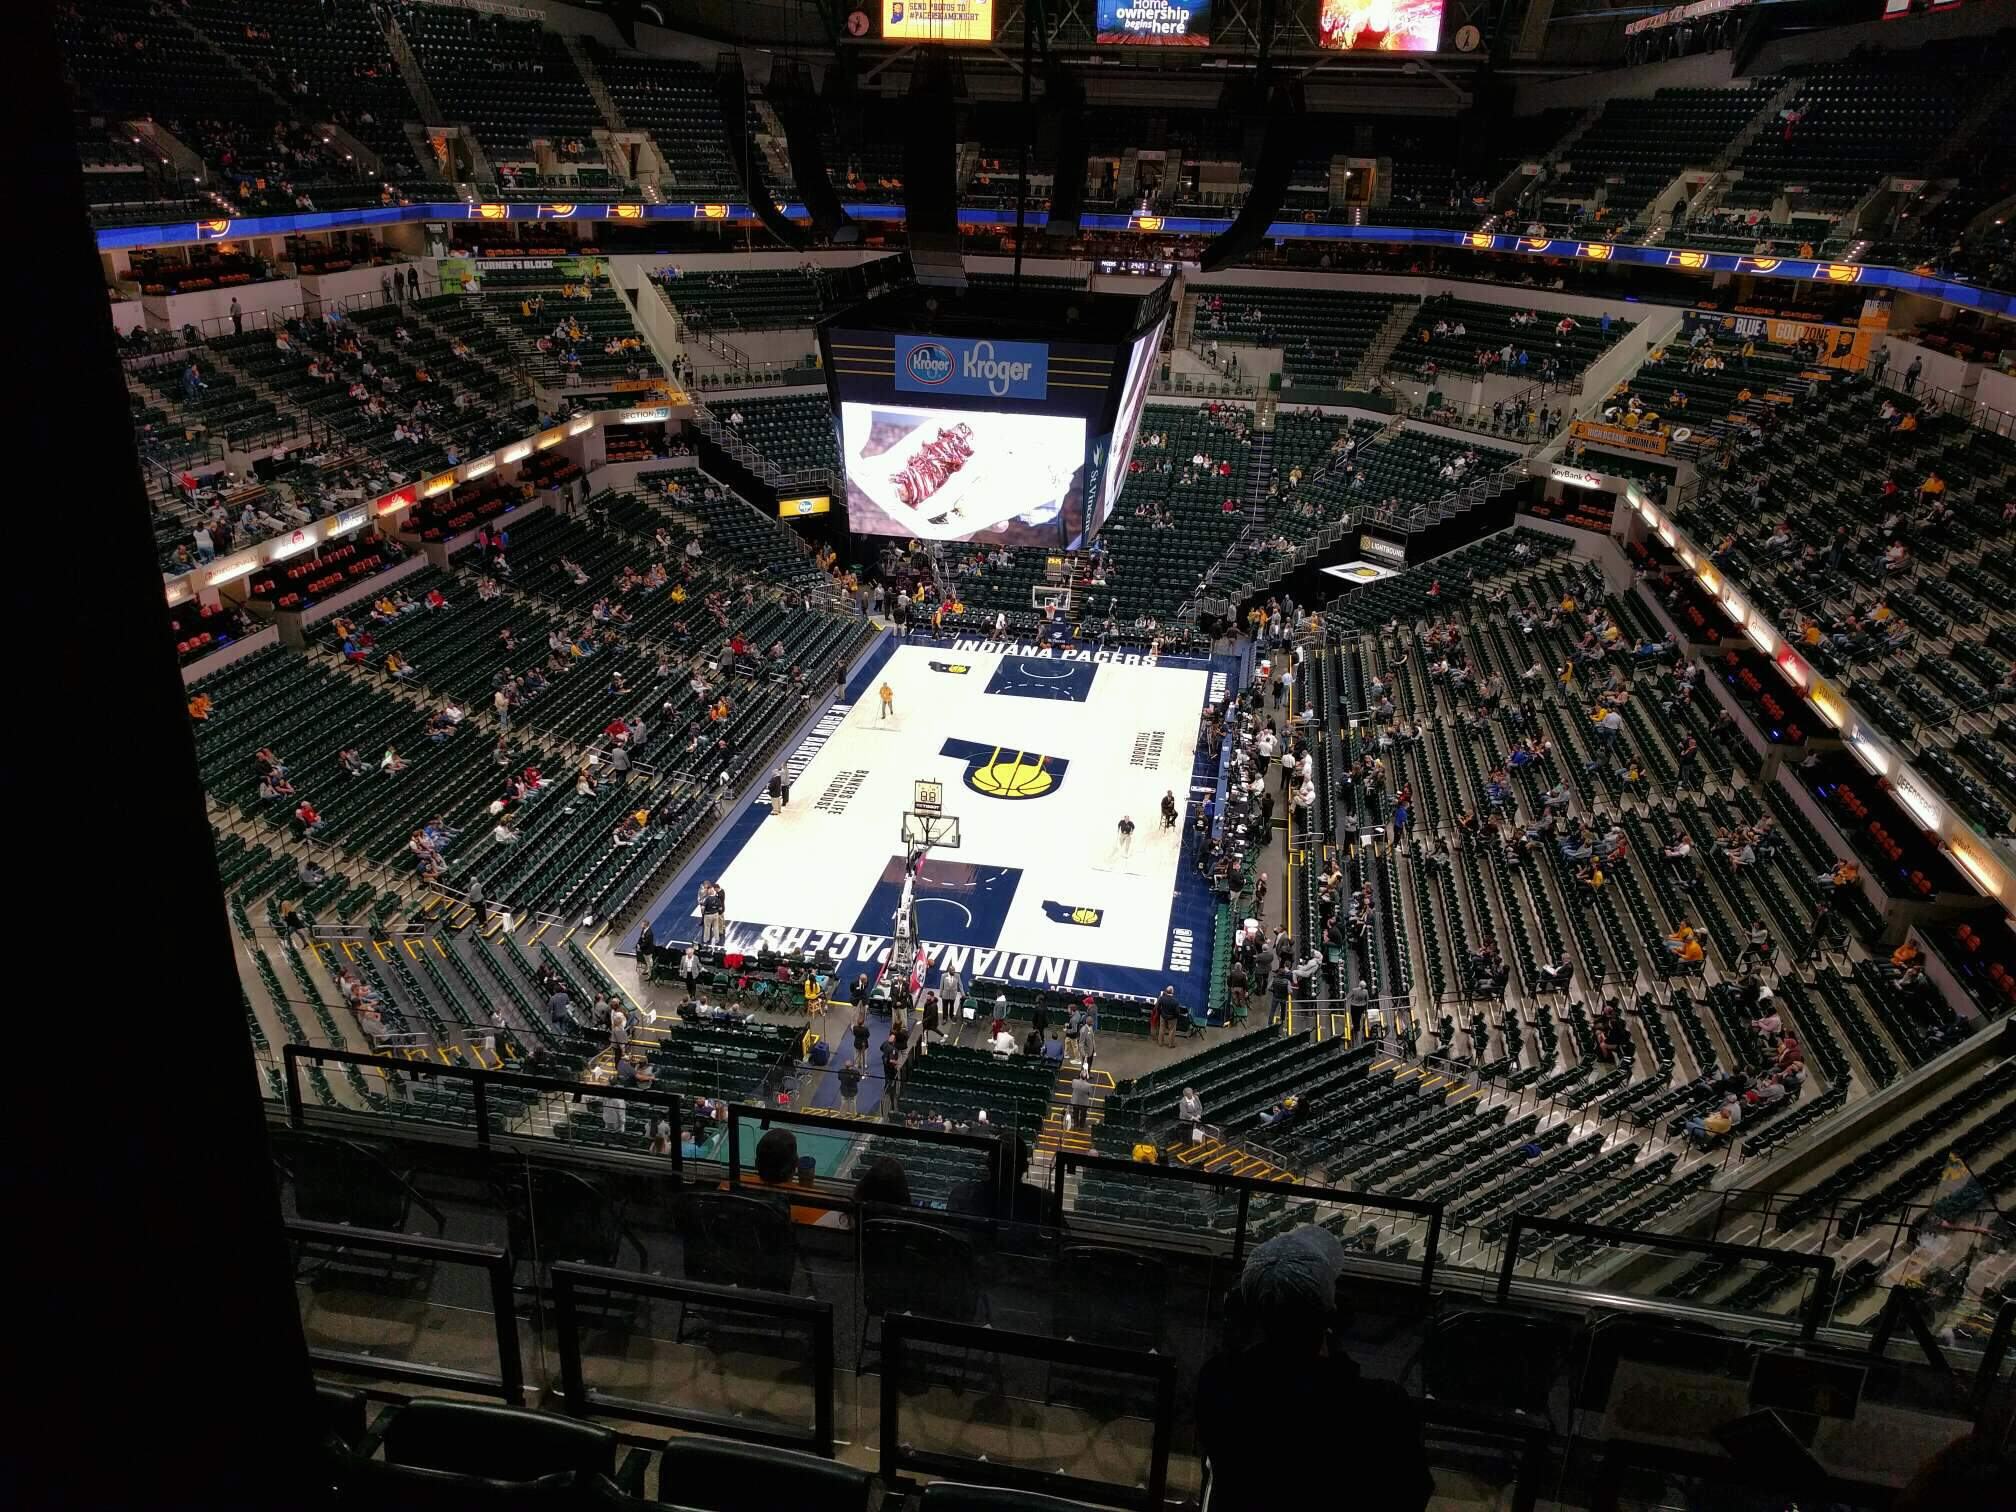 Bankers Life Fieldhouse Section 216 Row 8 Seat 8